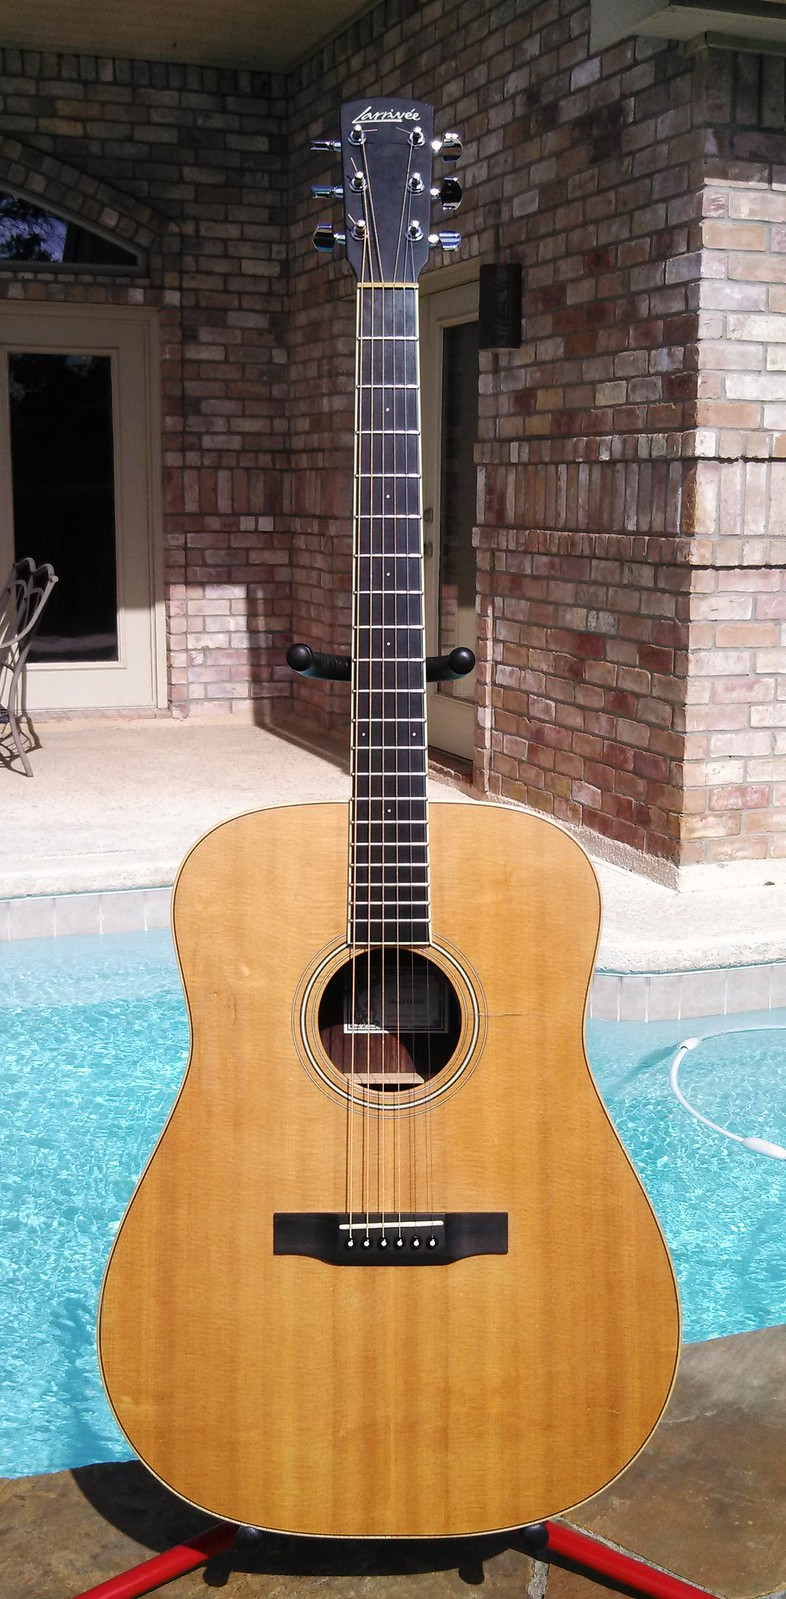 best value in cheap acoustic guitars page 2 the gear page. Black Bedroom Furniture Sets. Home Design Ideas